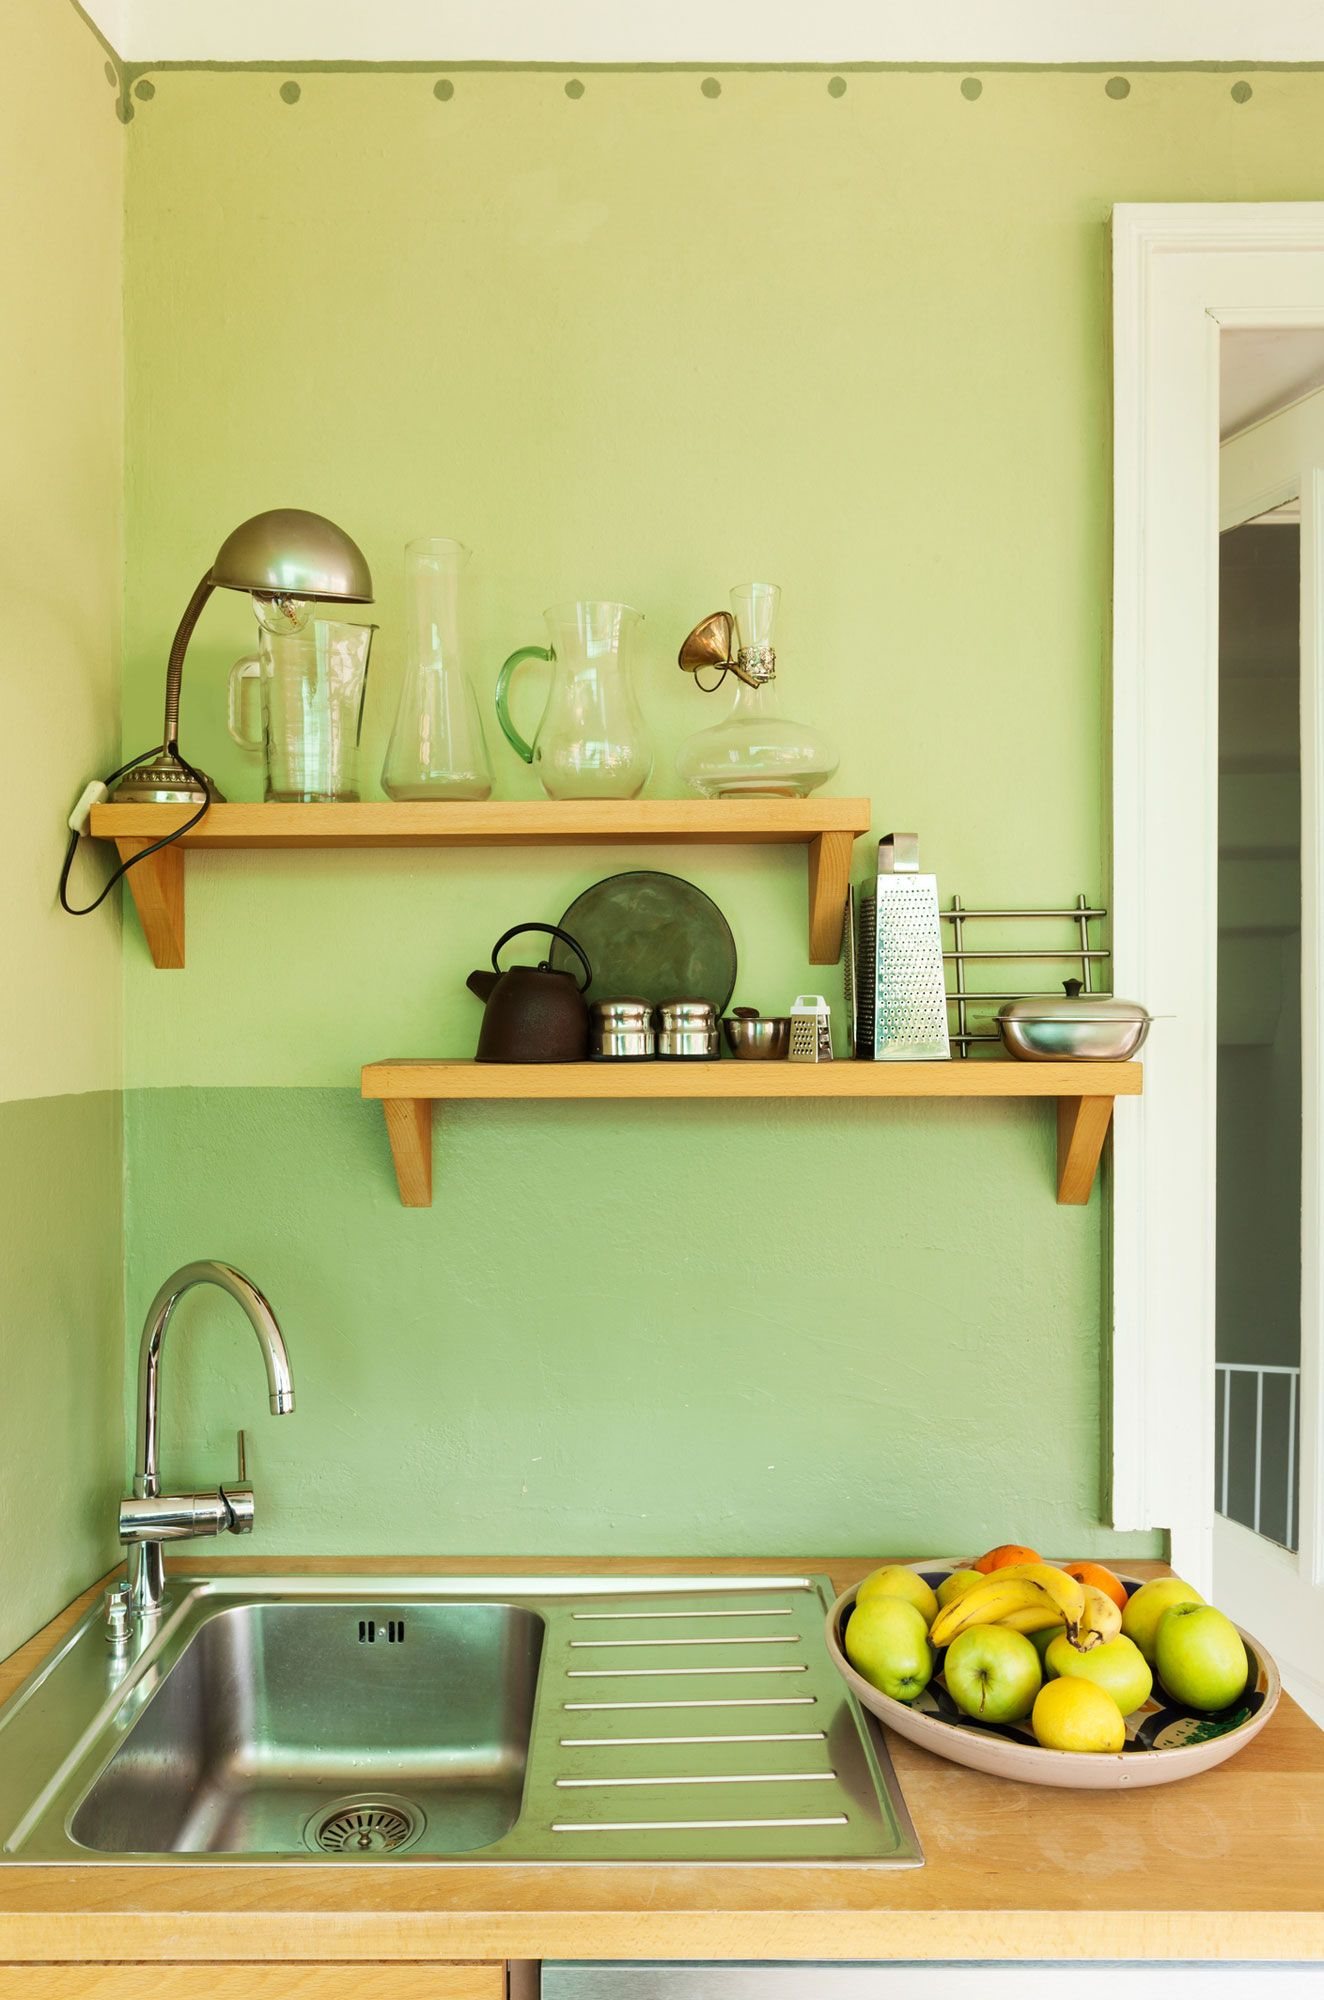 Decorar una cocina en color verde hogarmania - Como empapelar una pared ...